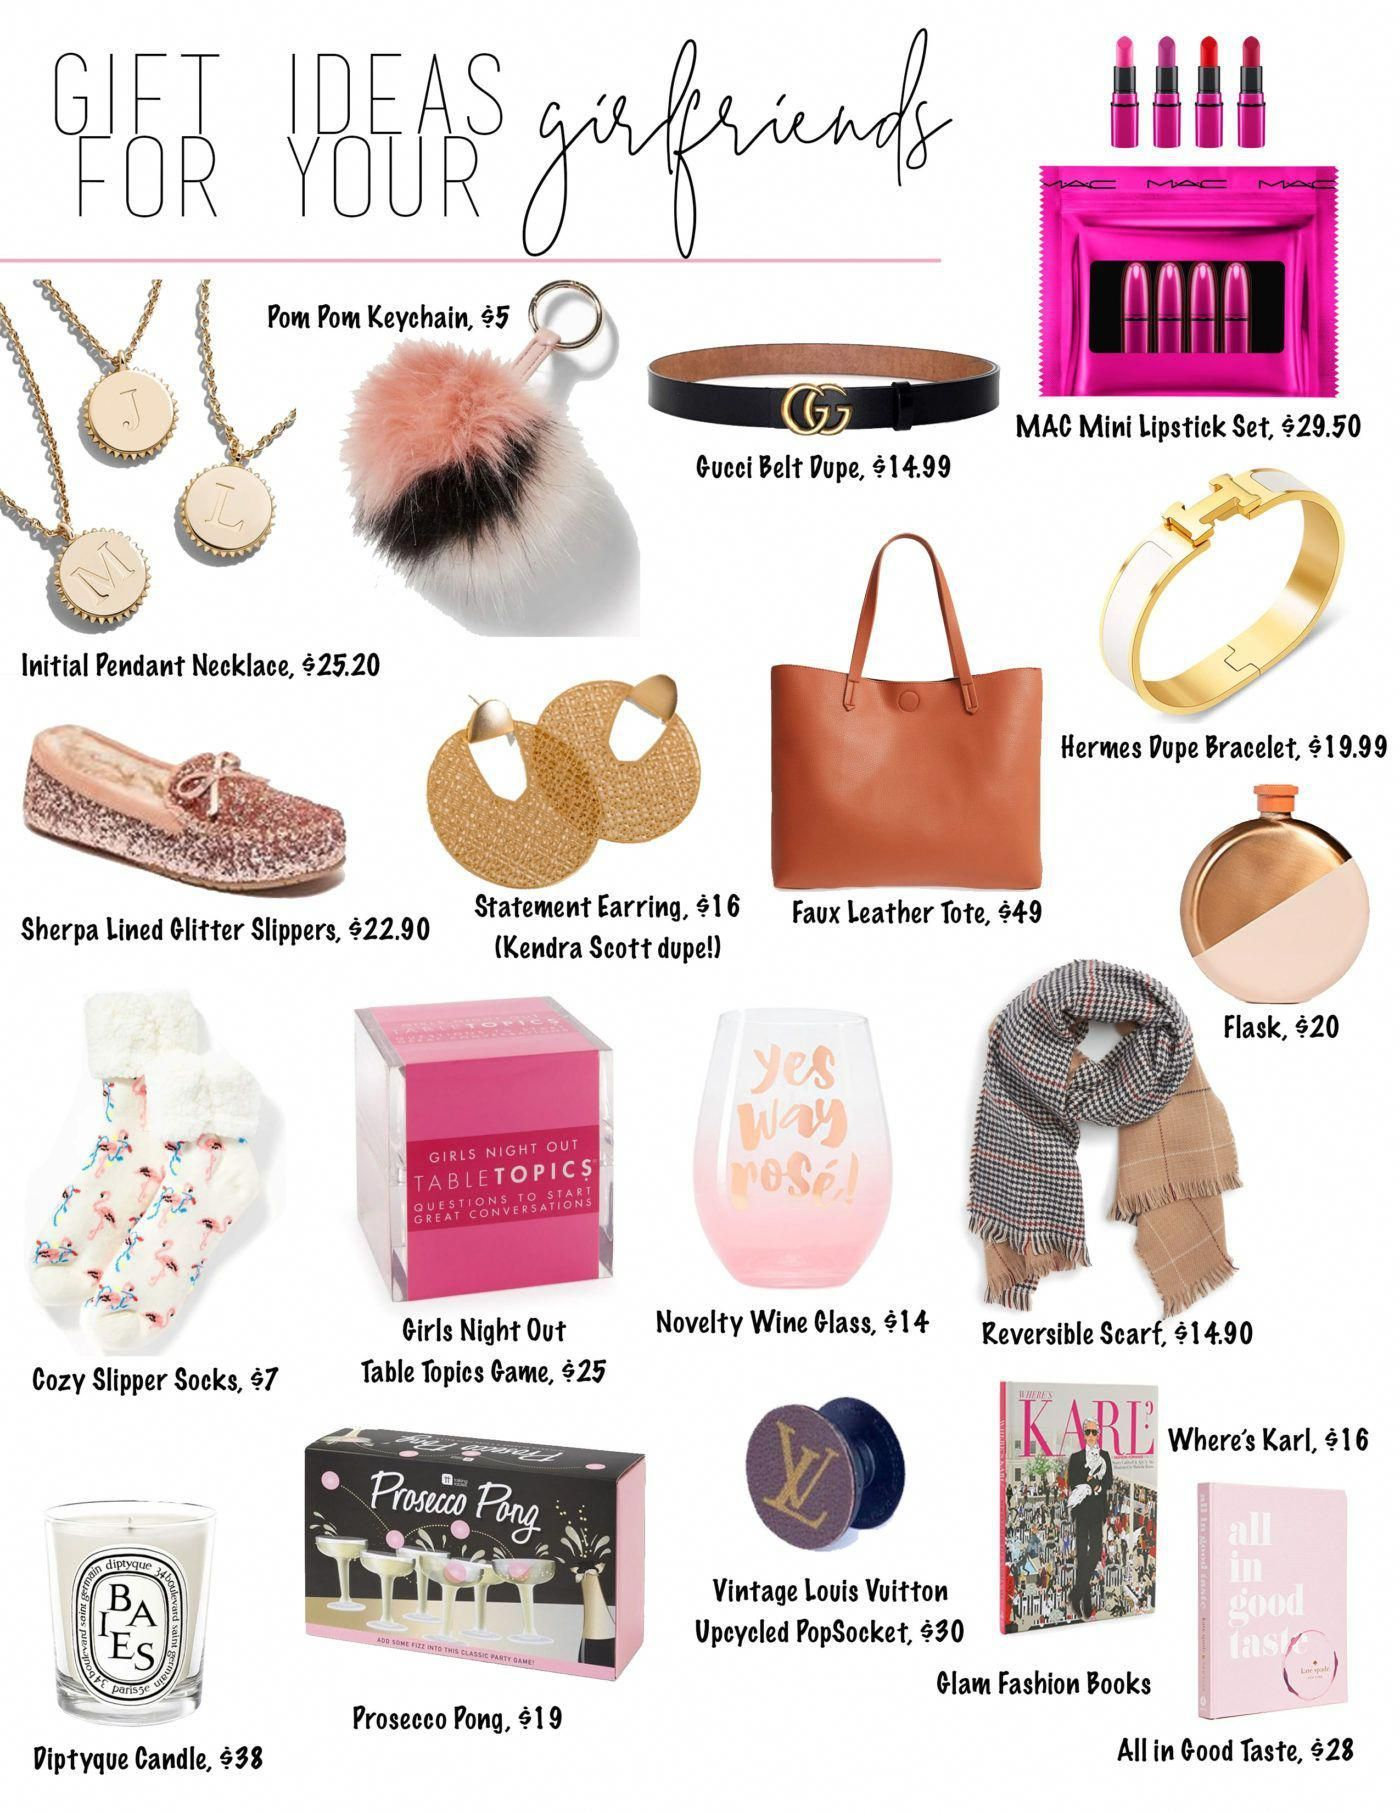 Gift Ideas For 30 Year Old Woman Nyc Gifts For Her Gifts For An Artistic Woman 201901 Girlfriend Gifts Gifts For Your Girlfriend Christmas Gift Inspiration